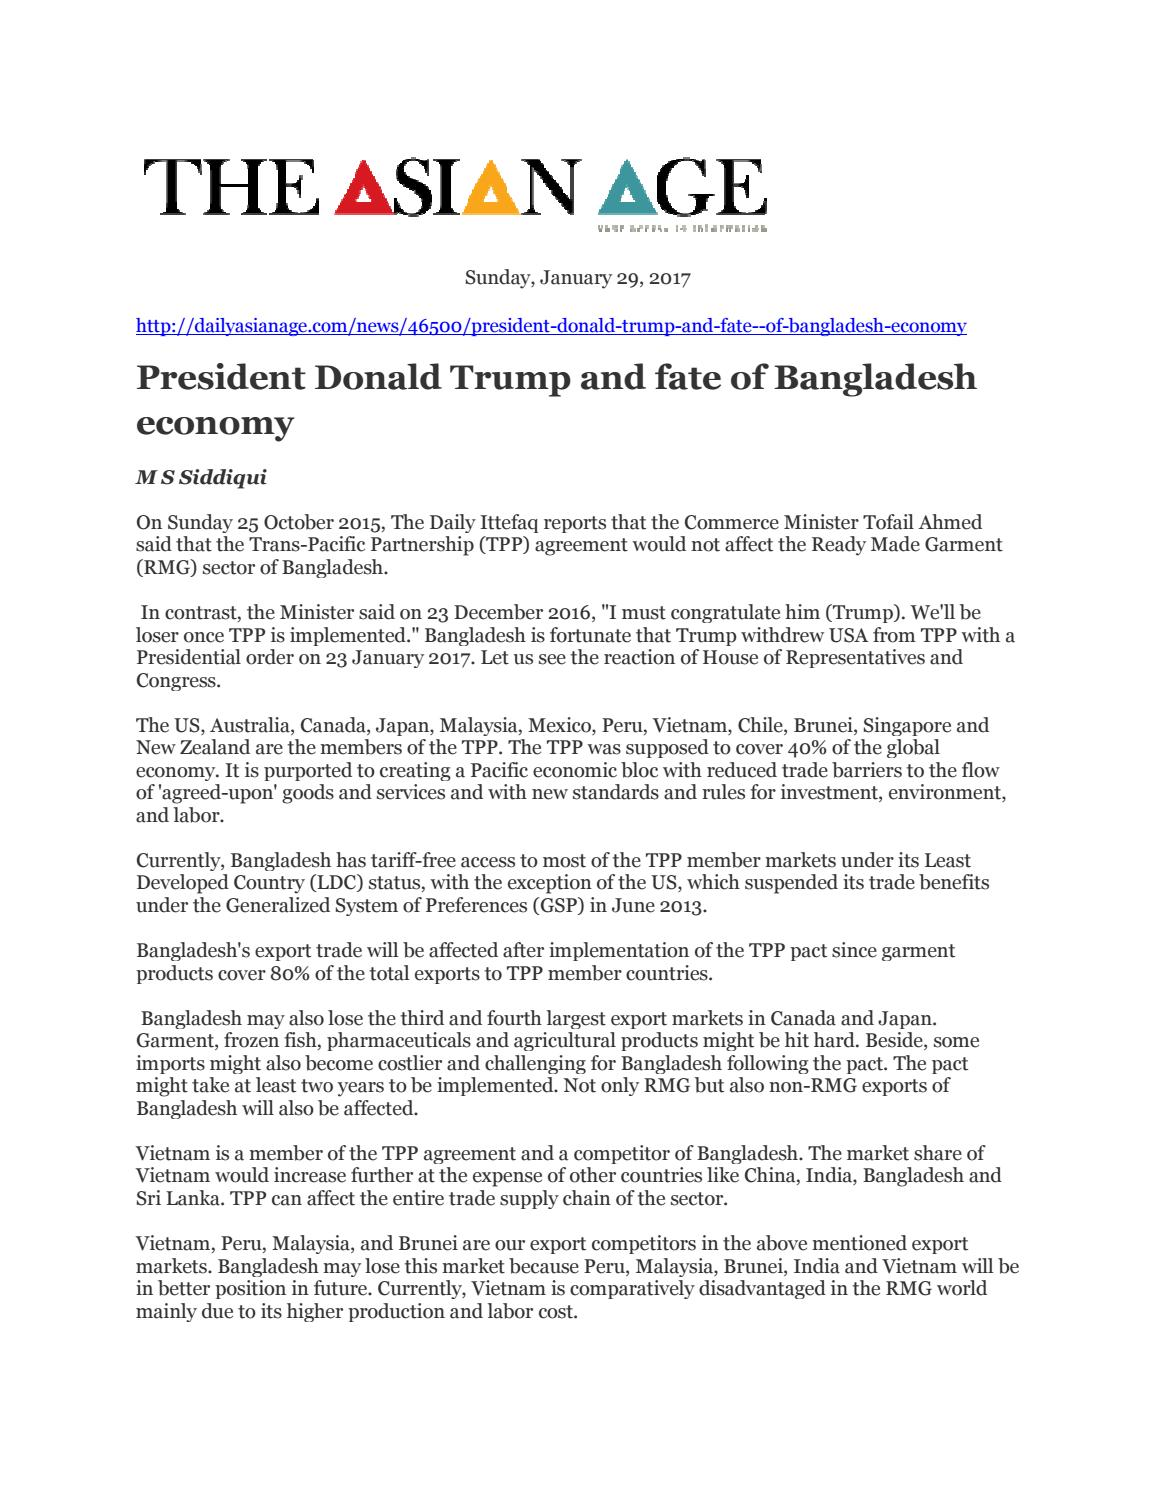 President donald trump and fate of bangladesh economy by